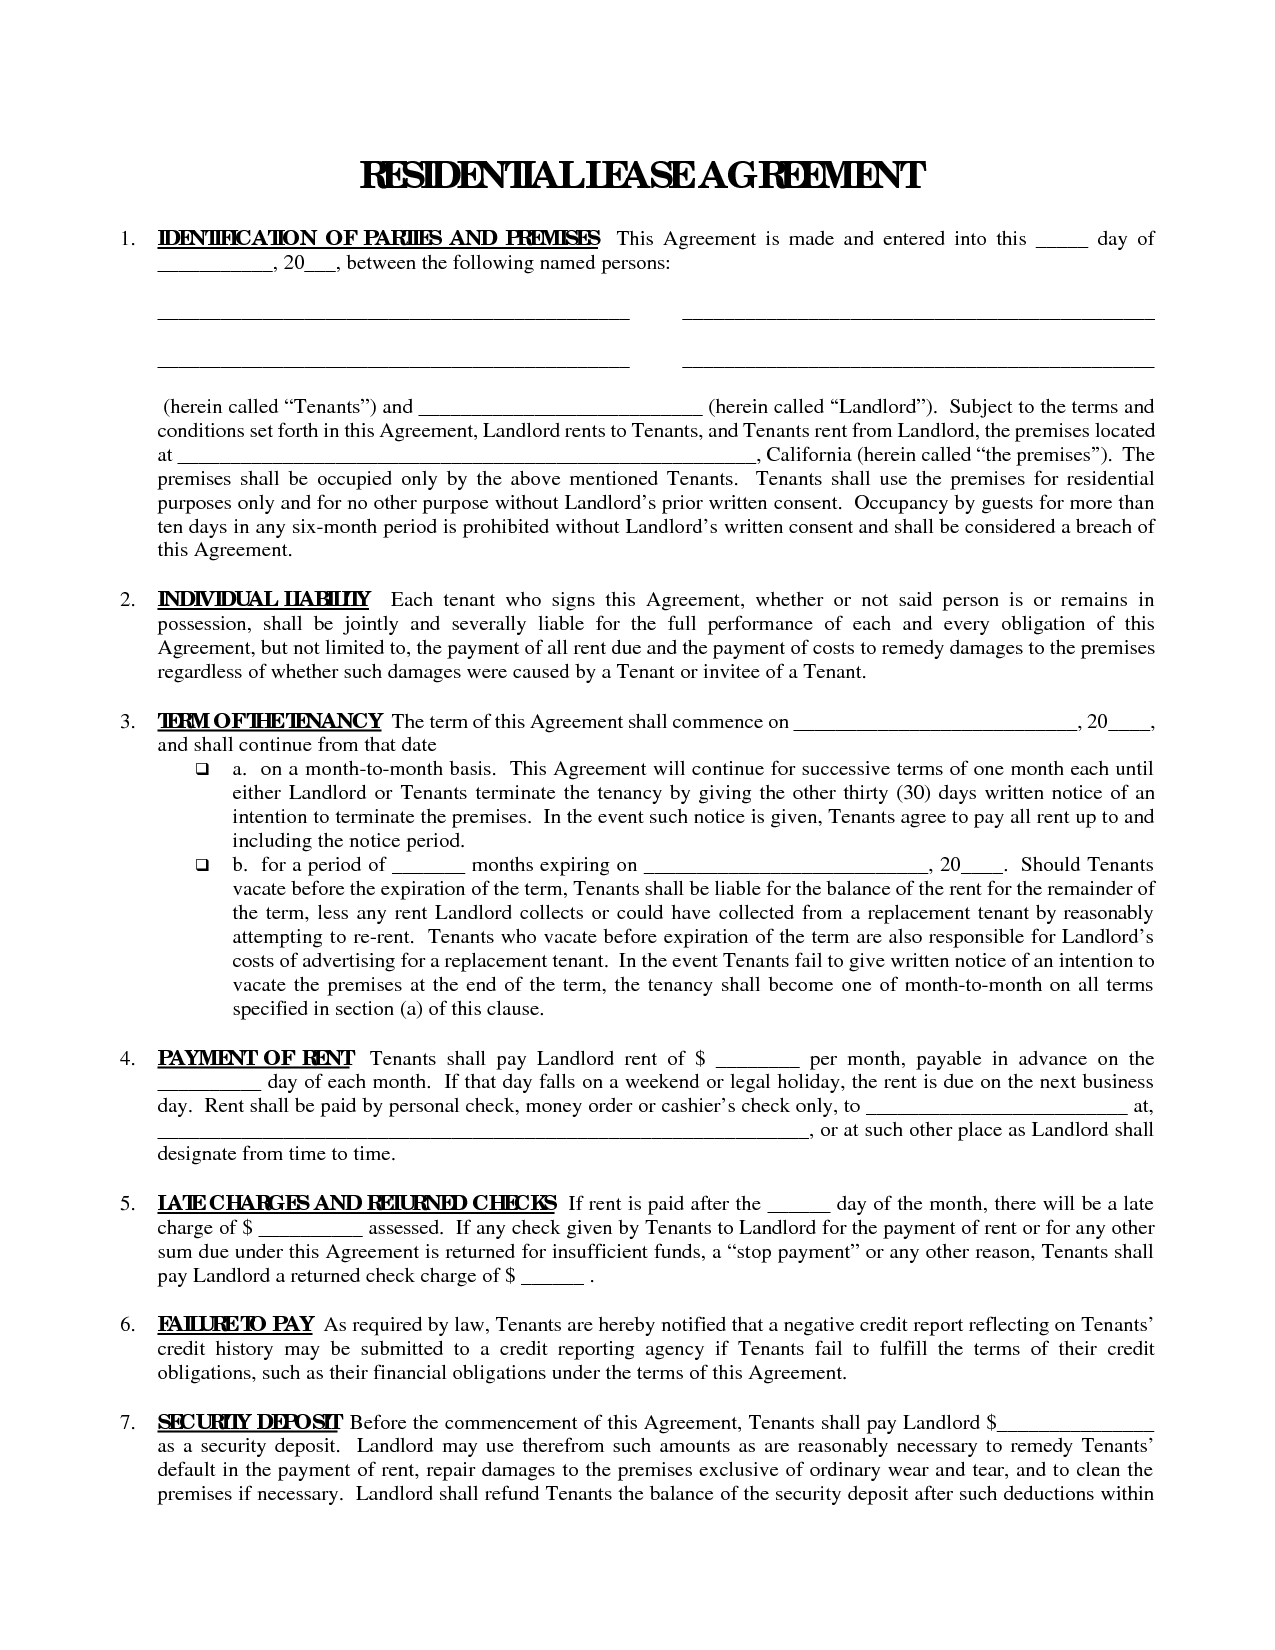 Great Printable Residential Free House Lease Agreement | Residential Lease  Agreement: Real Estate Legal Form And Free Printable Residential Lease Agreement